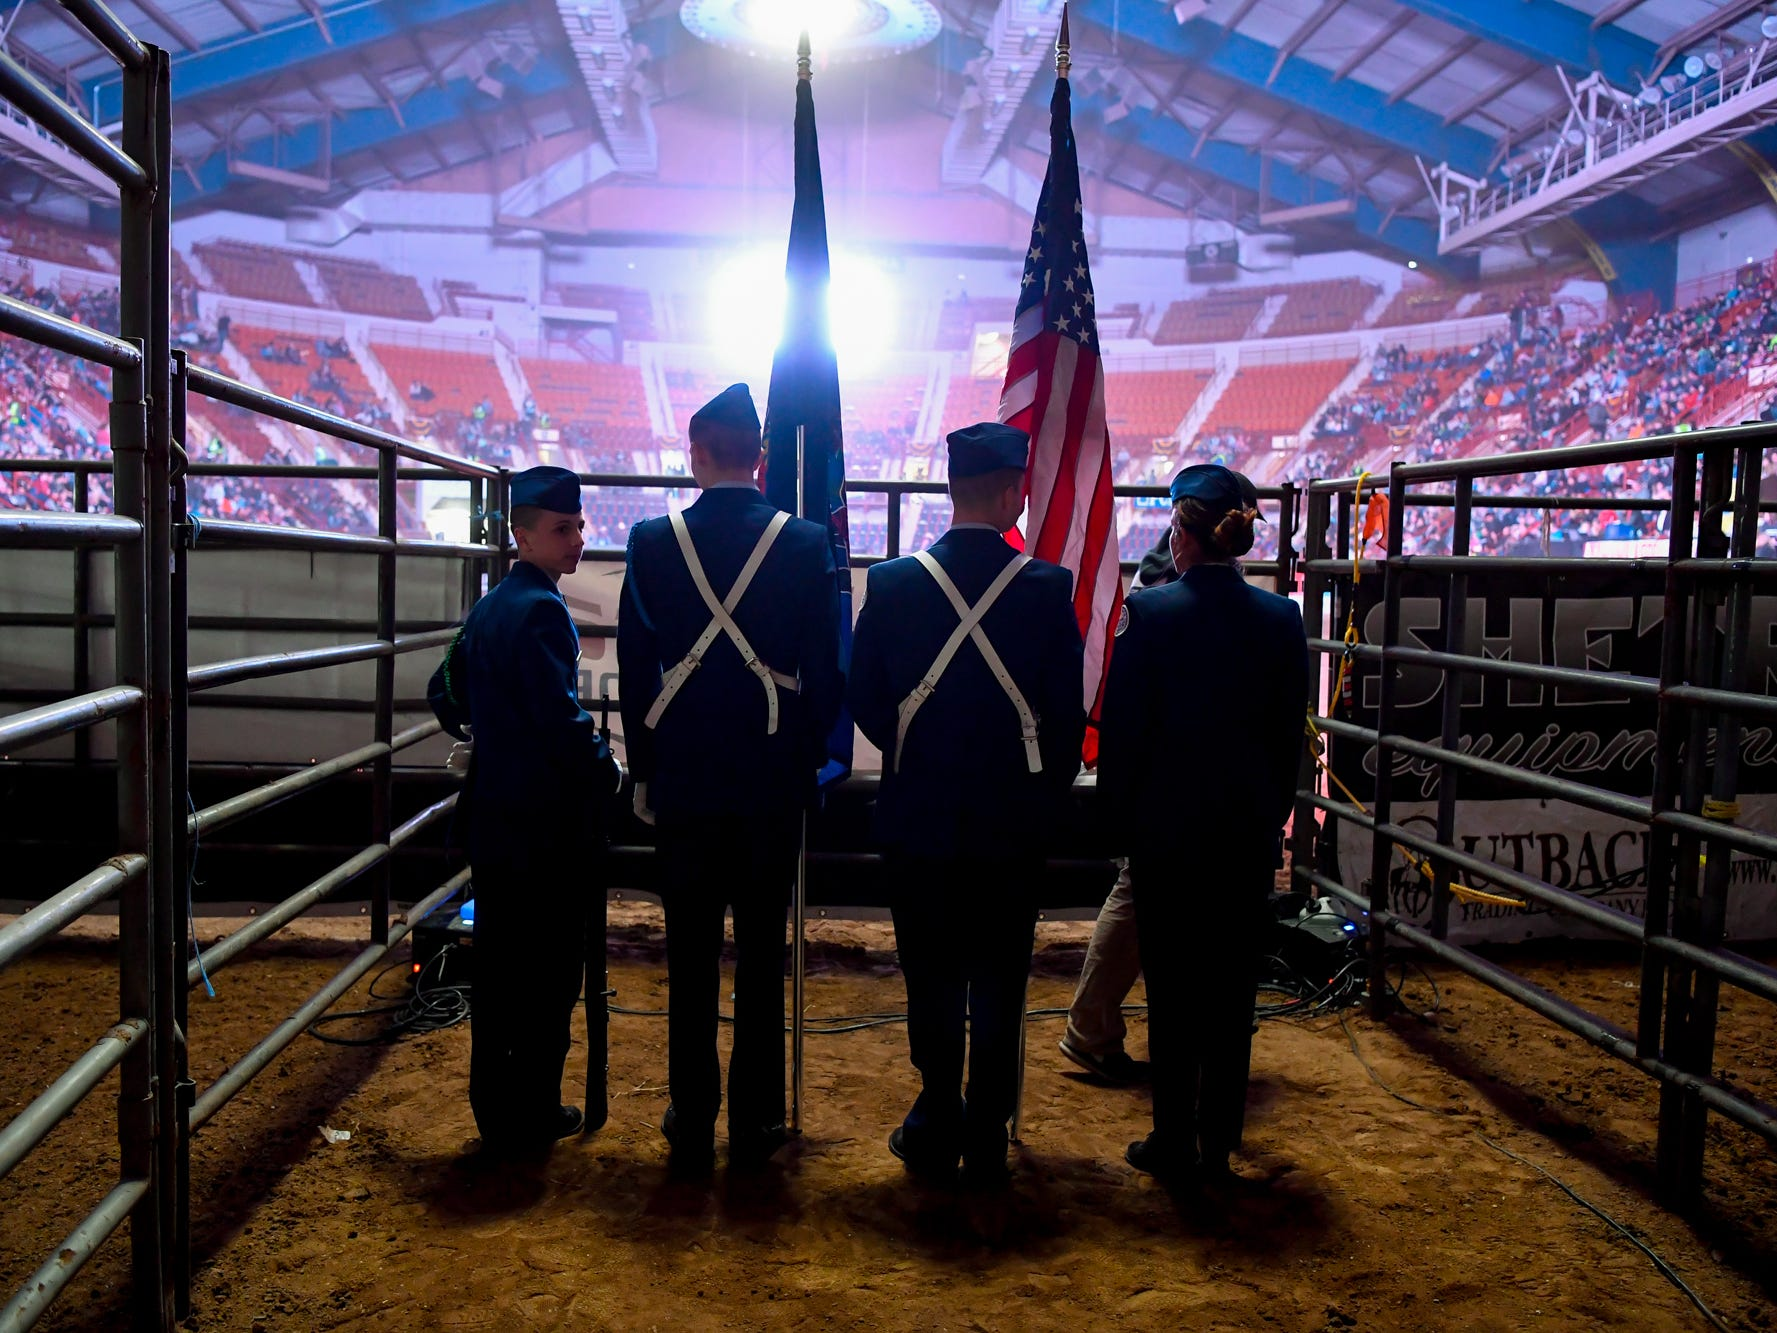 Central York High School Air Force JROTC color guard Michael Sandacz, left, Zach Eisenhart, Elijah Perez and Alina Arechiga, right, wait to enter the arena on the first night of the PRCA First Frontier Circuit Finals Rodeo at the 103rd PA Farm Show, Thursday, January 10, 2019.